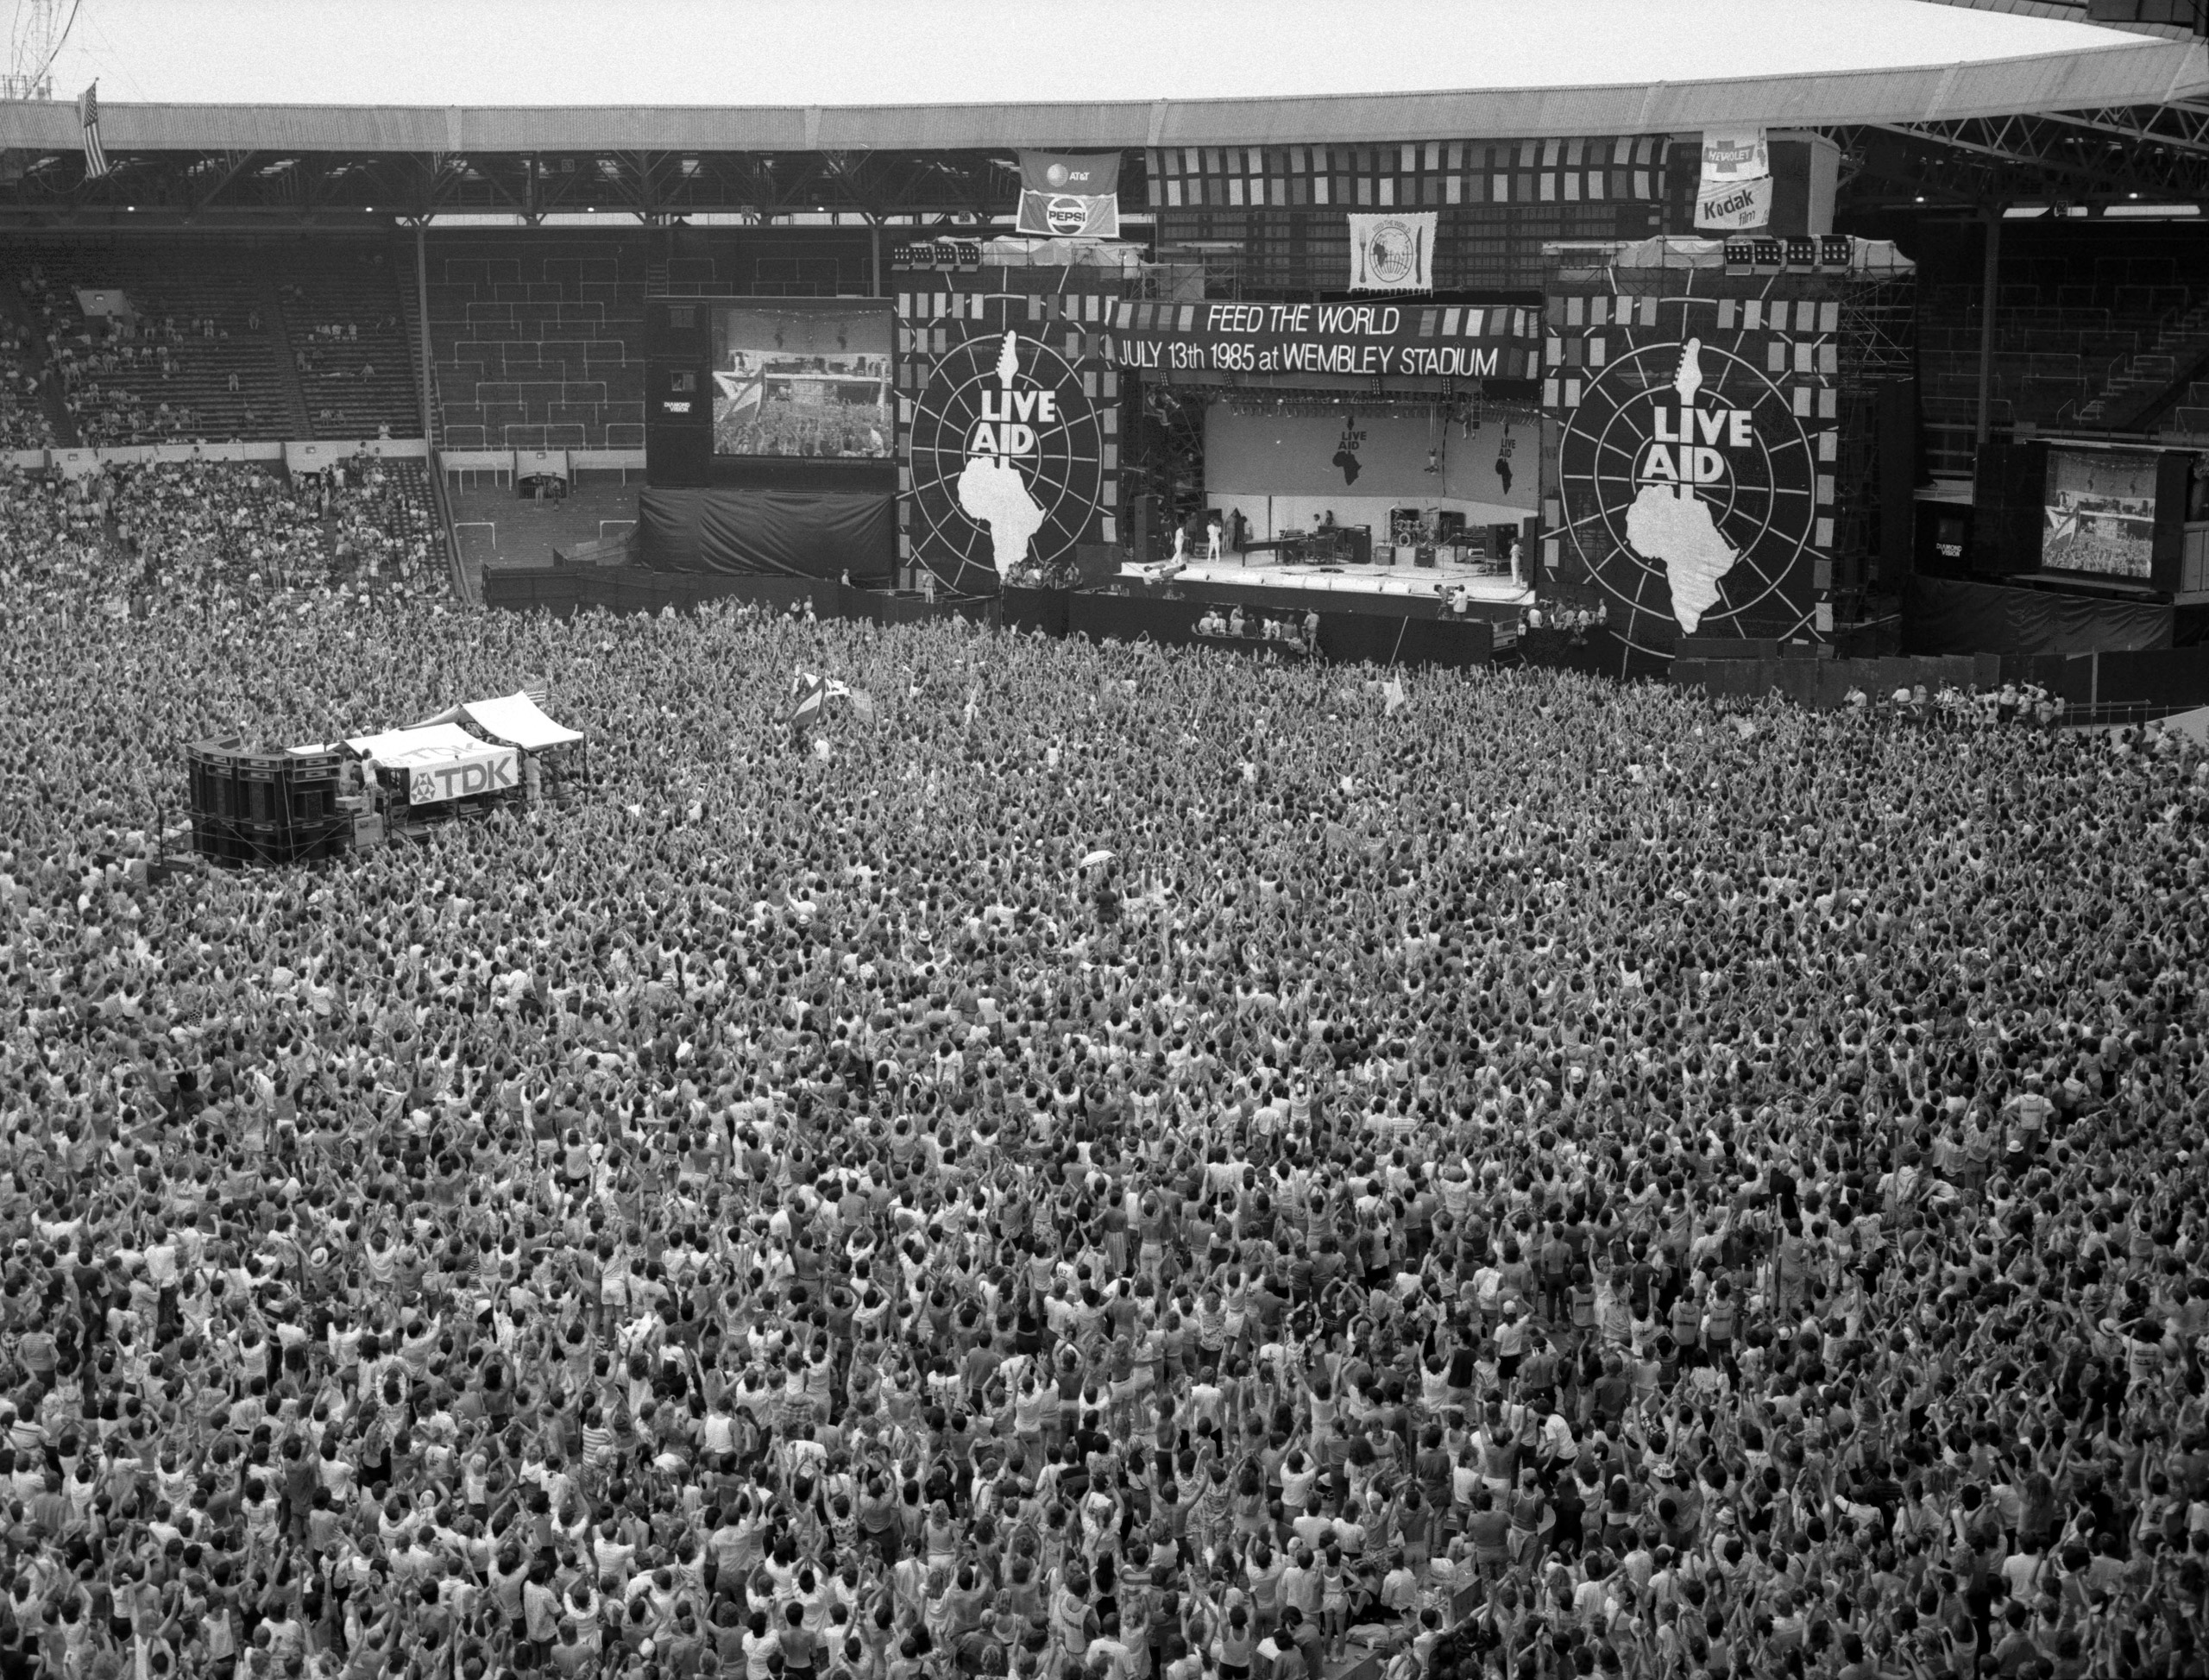 Crowd shot during Live Aid at Wembley Stadium in London, July 13, 1985.